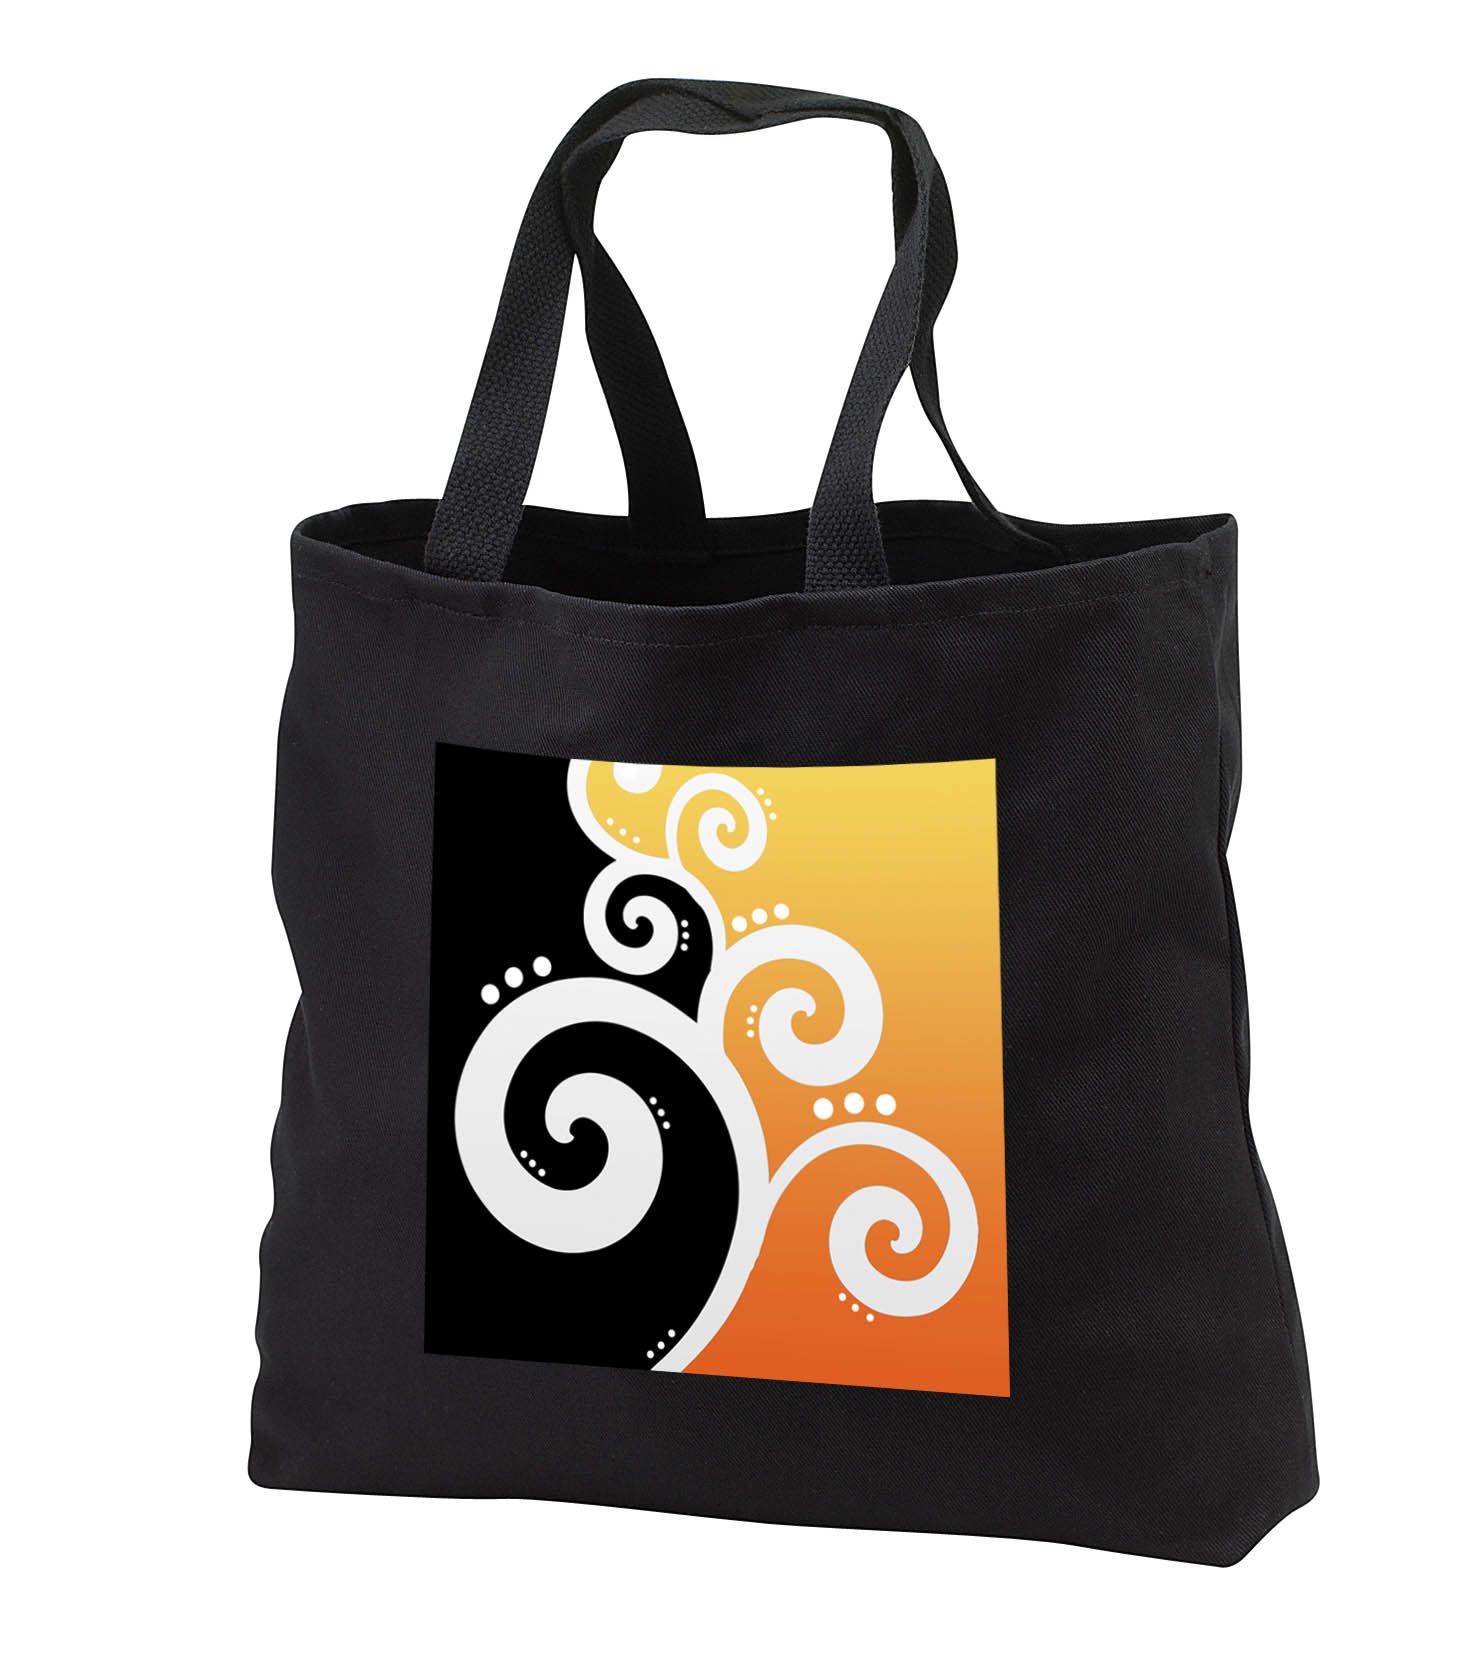 3dRose - Rewards4life Gifts - Chic Swirls And Dots Yellow - Tote Bags